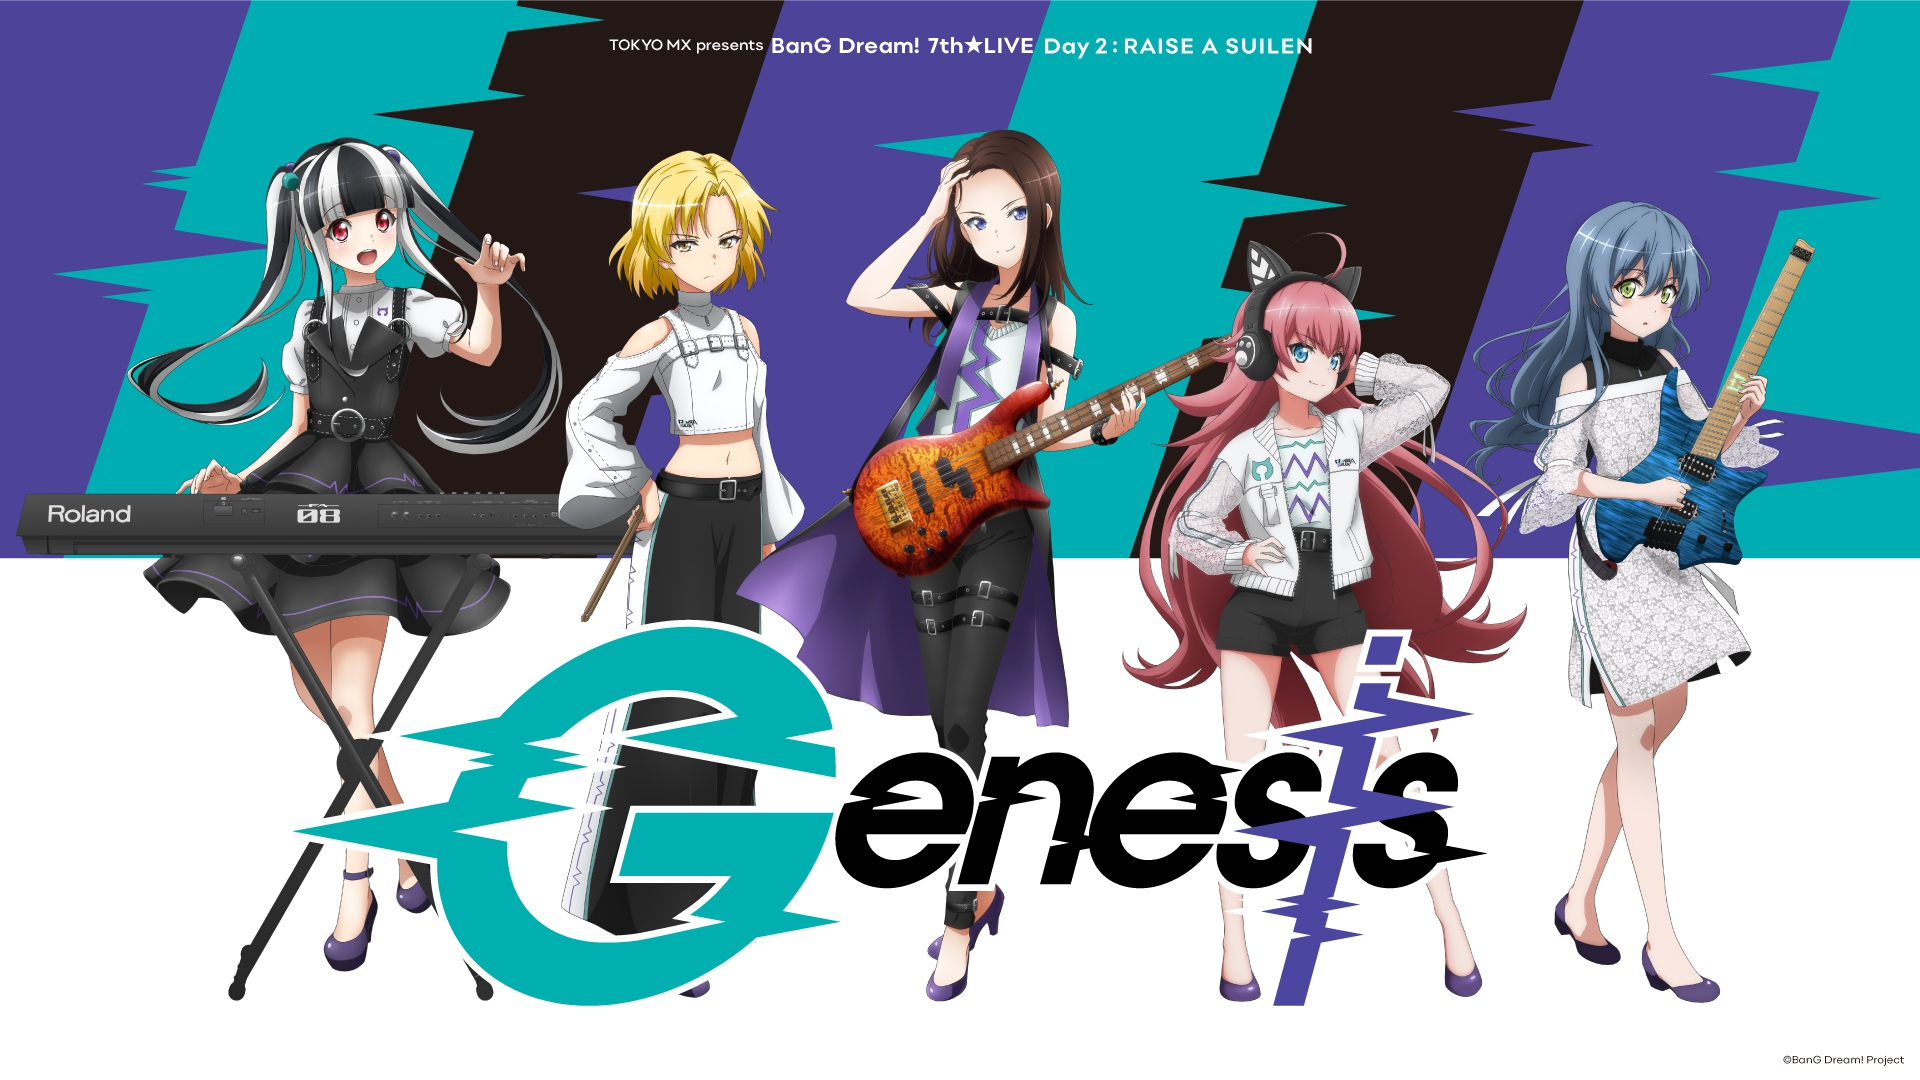 BanG Dream! Ultimate Live Theater - 7th Live: Genesis by RAISE A SUILEN